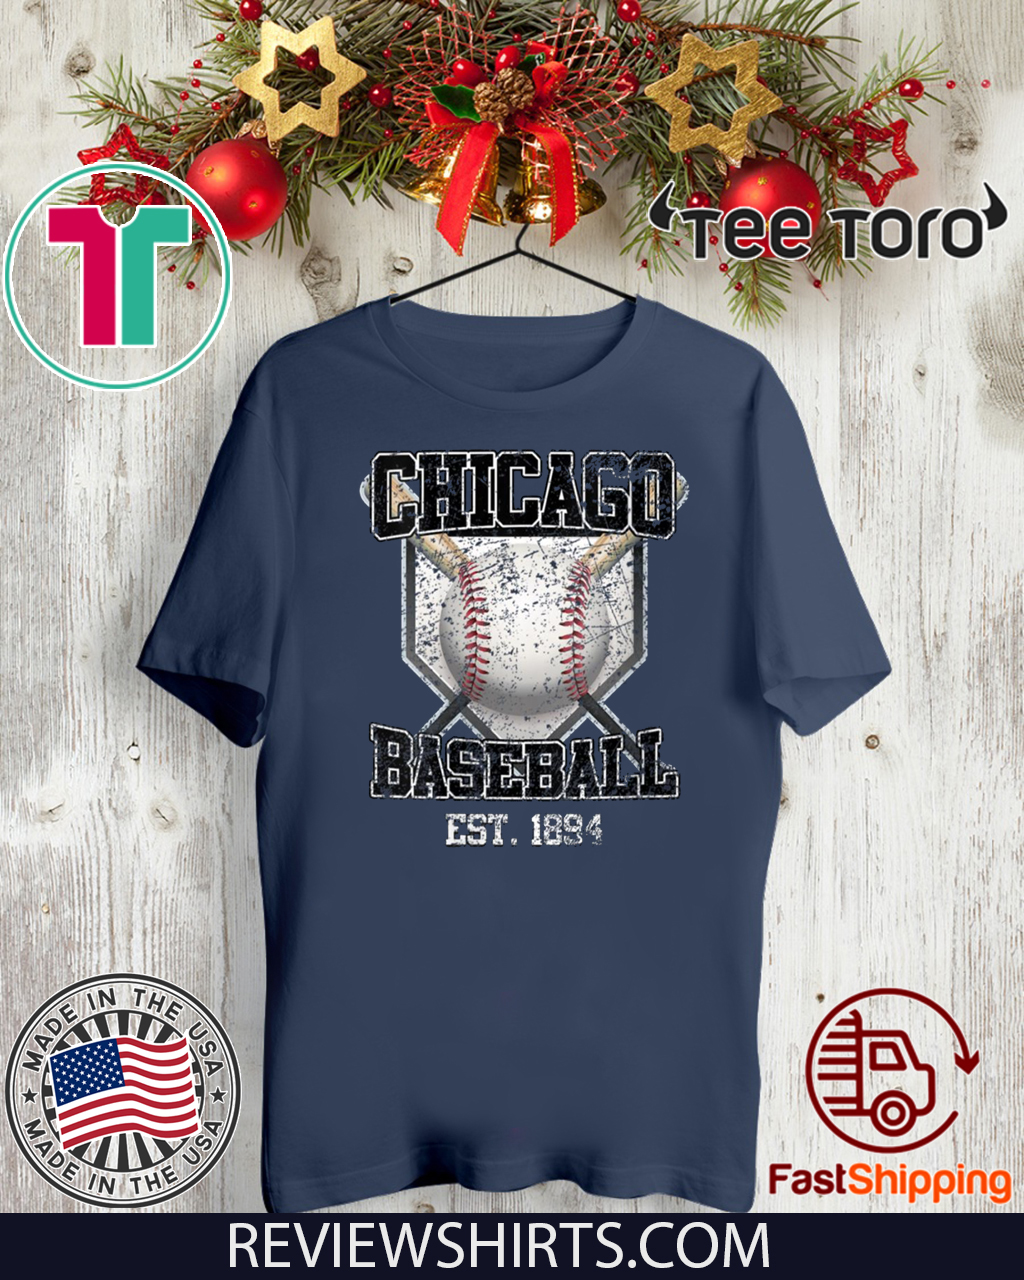 Vintage Chicago Baseball Est 1894 Shirt T-Shirt